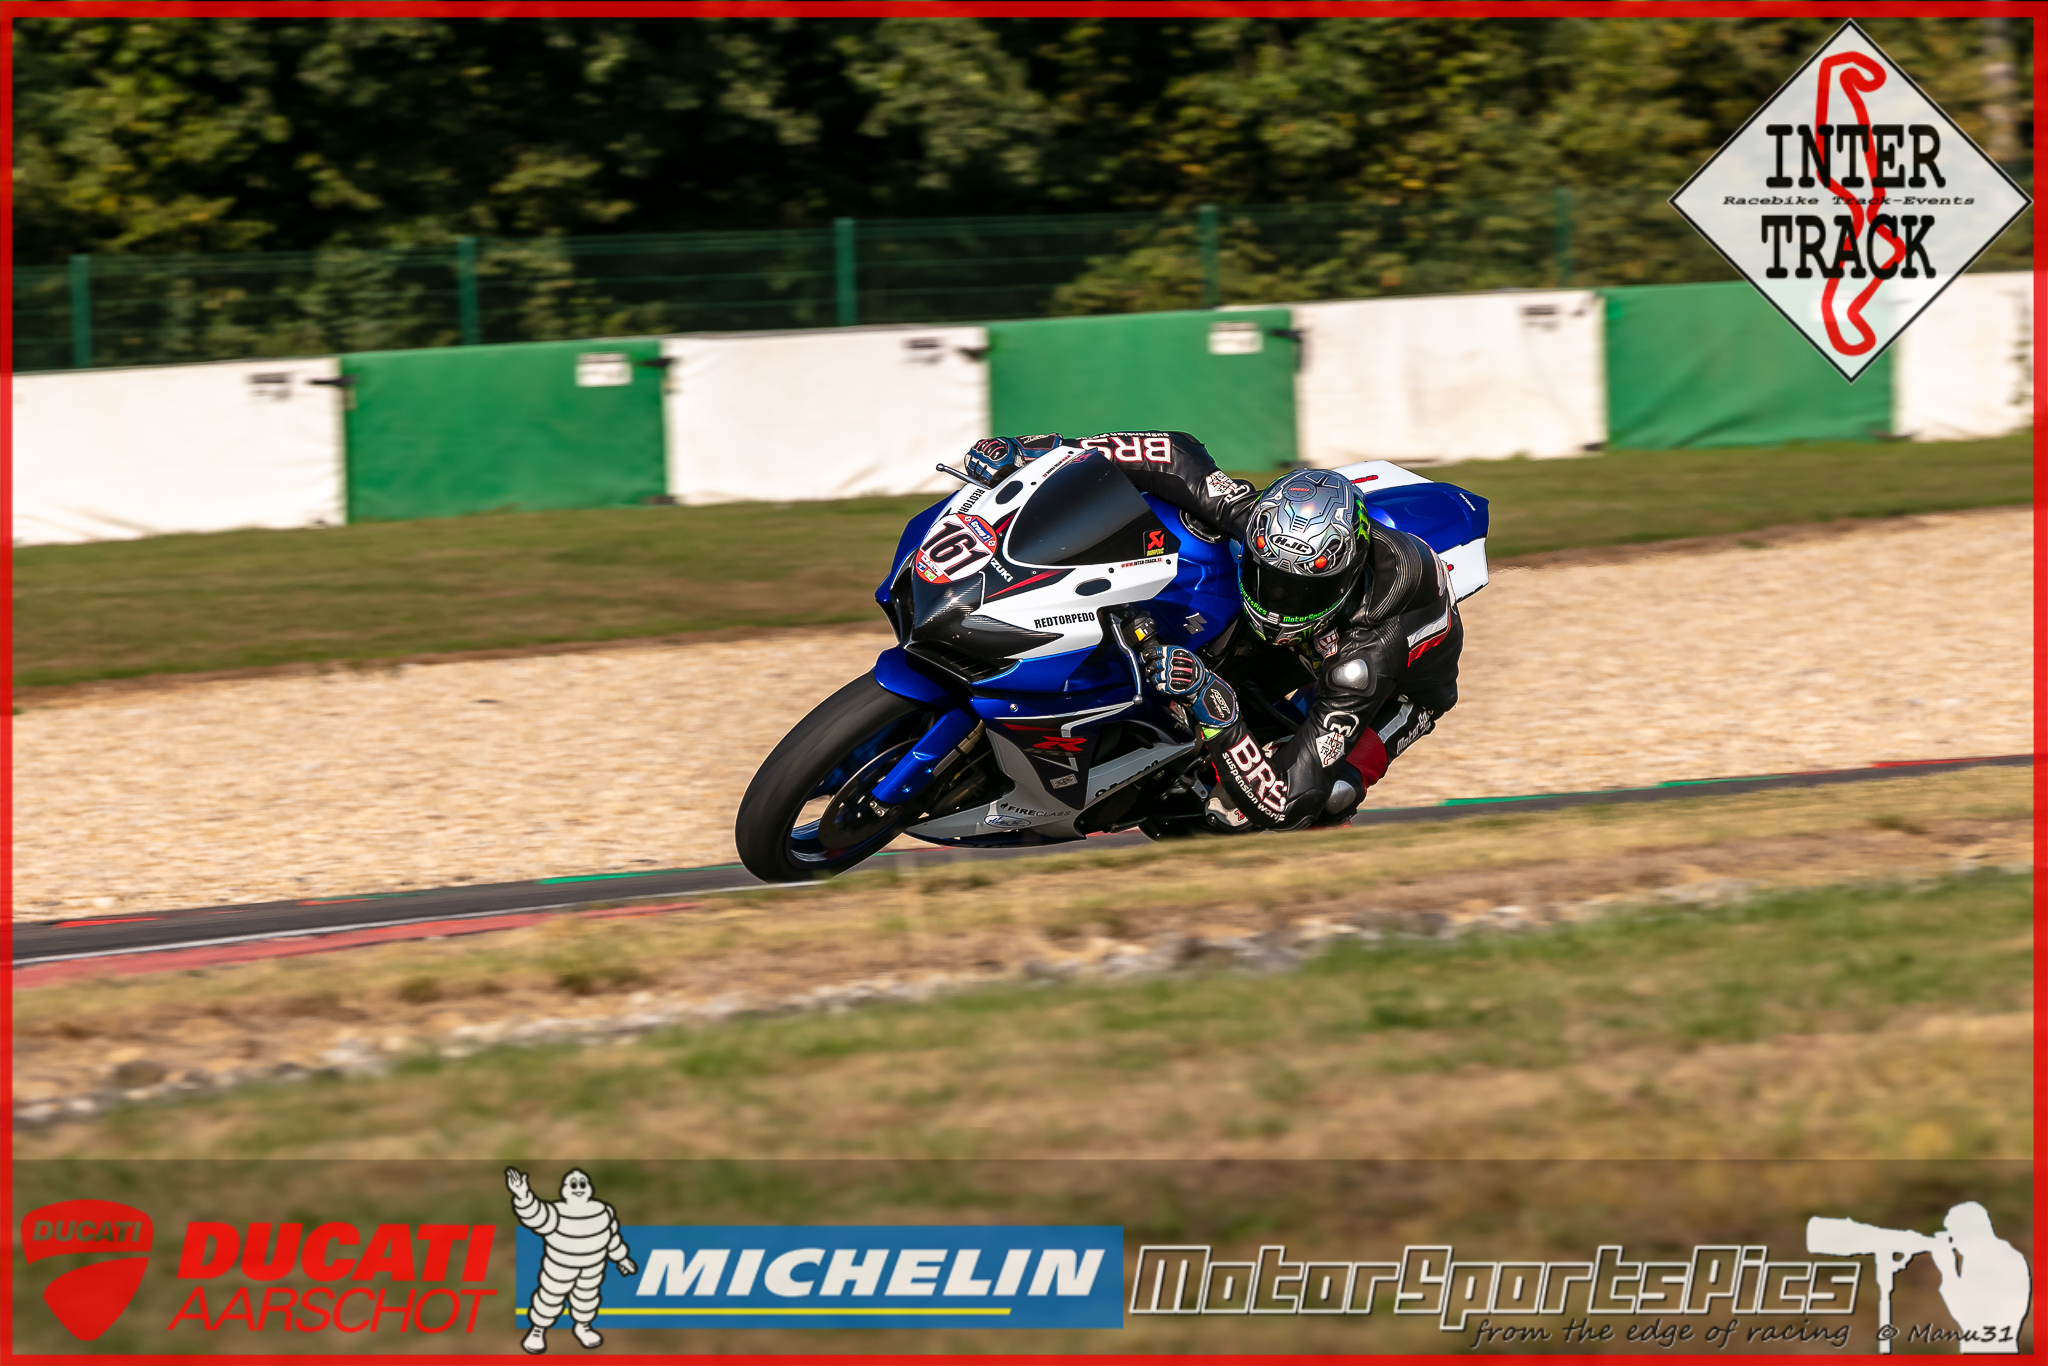 14-09-2020 Inter-Track at Mettet group 2 Blue